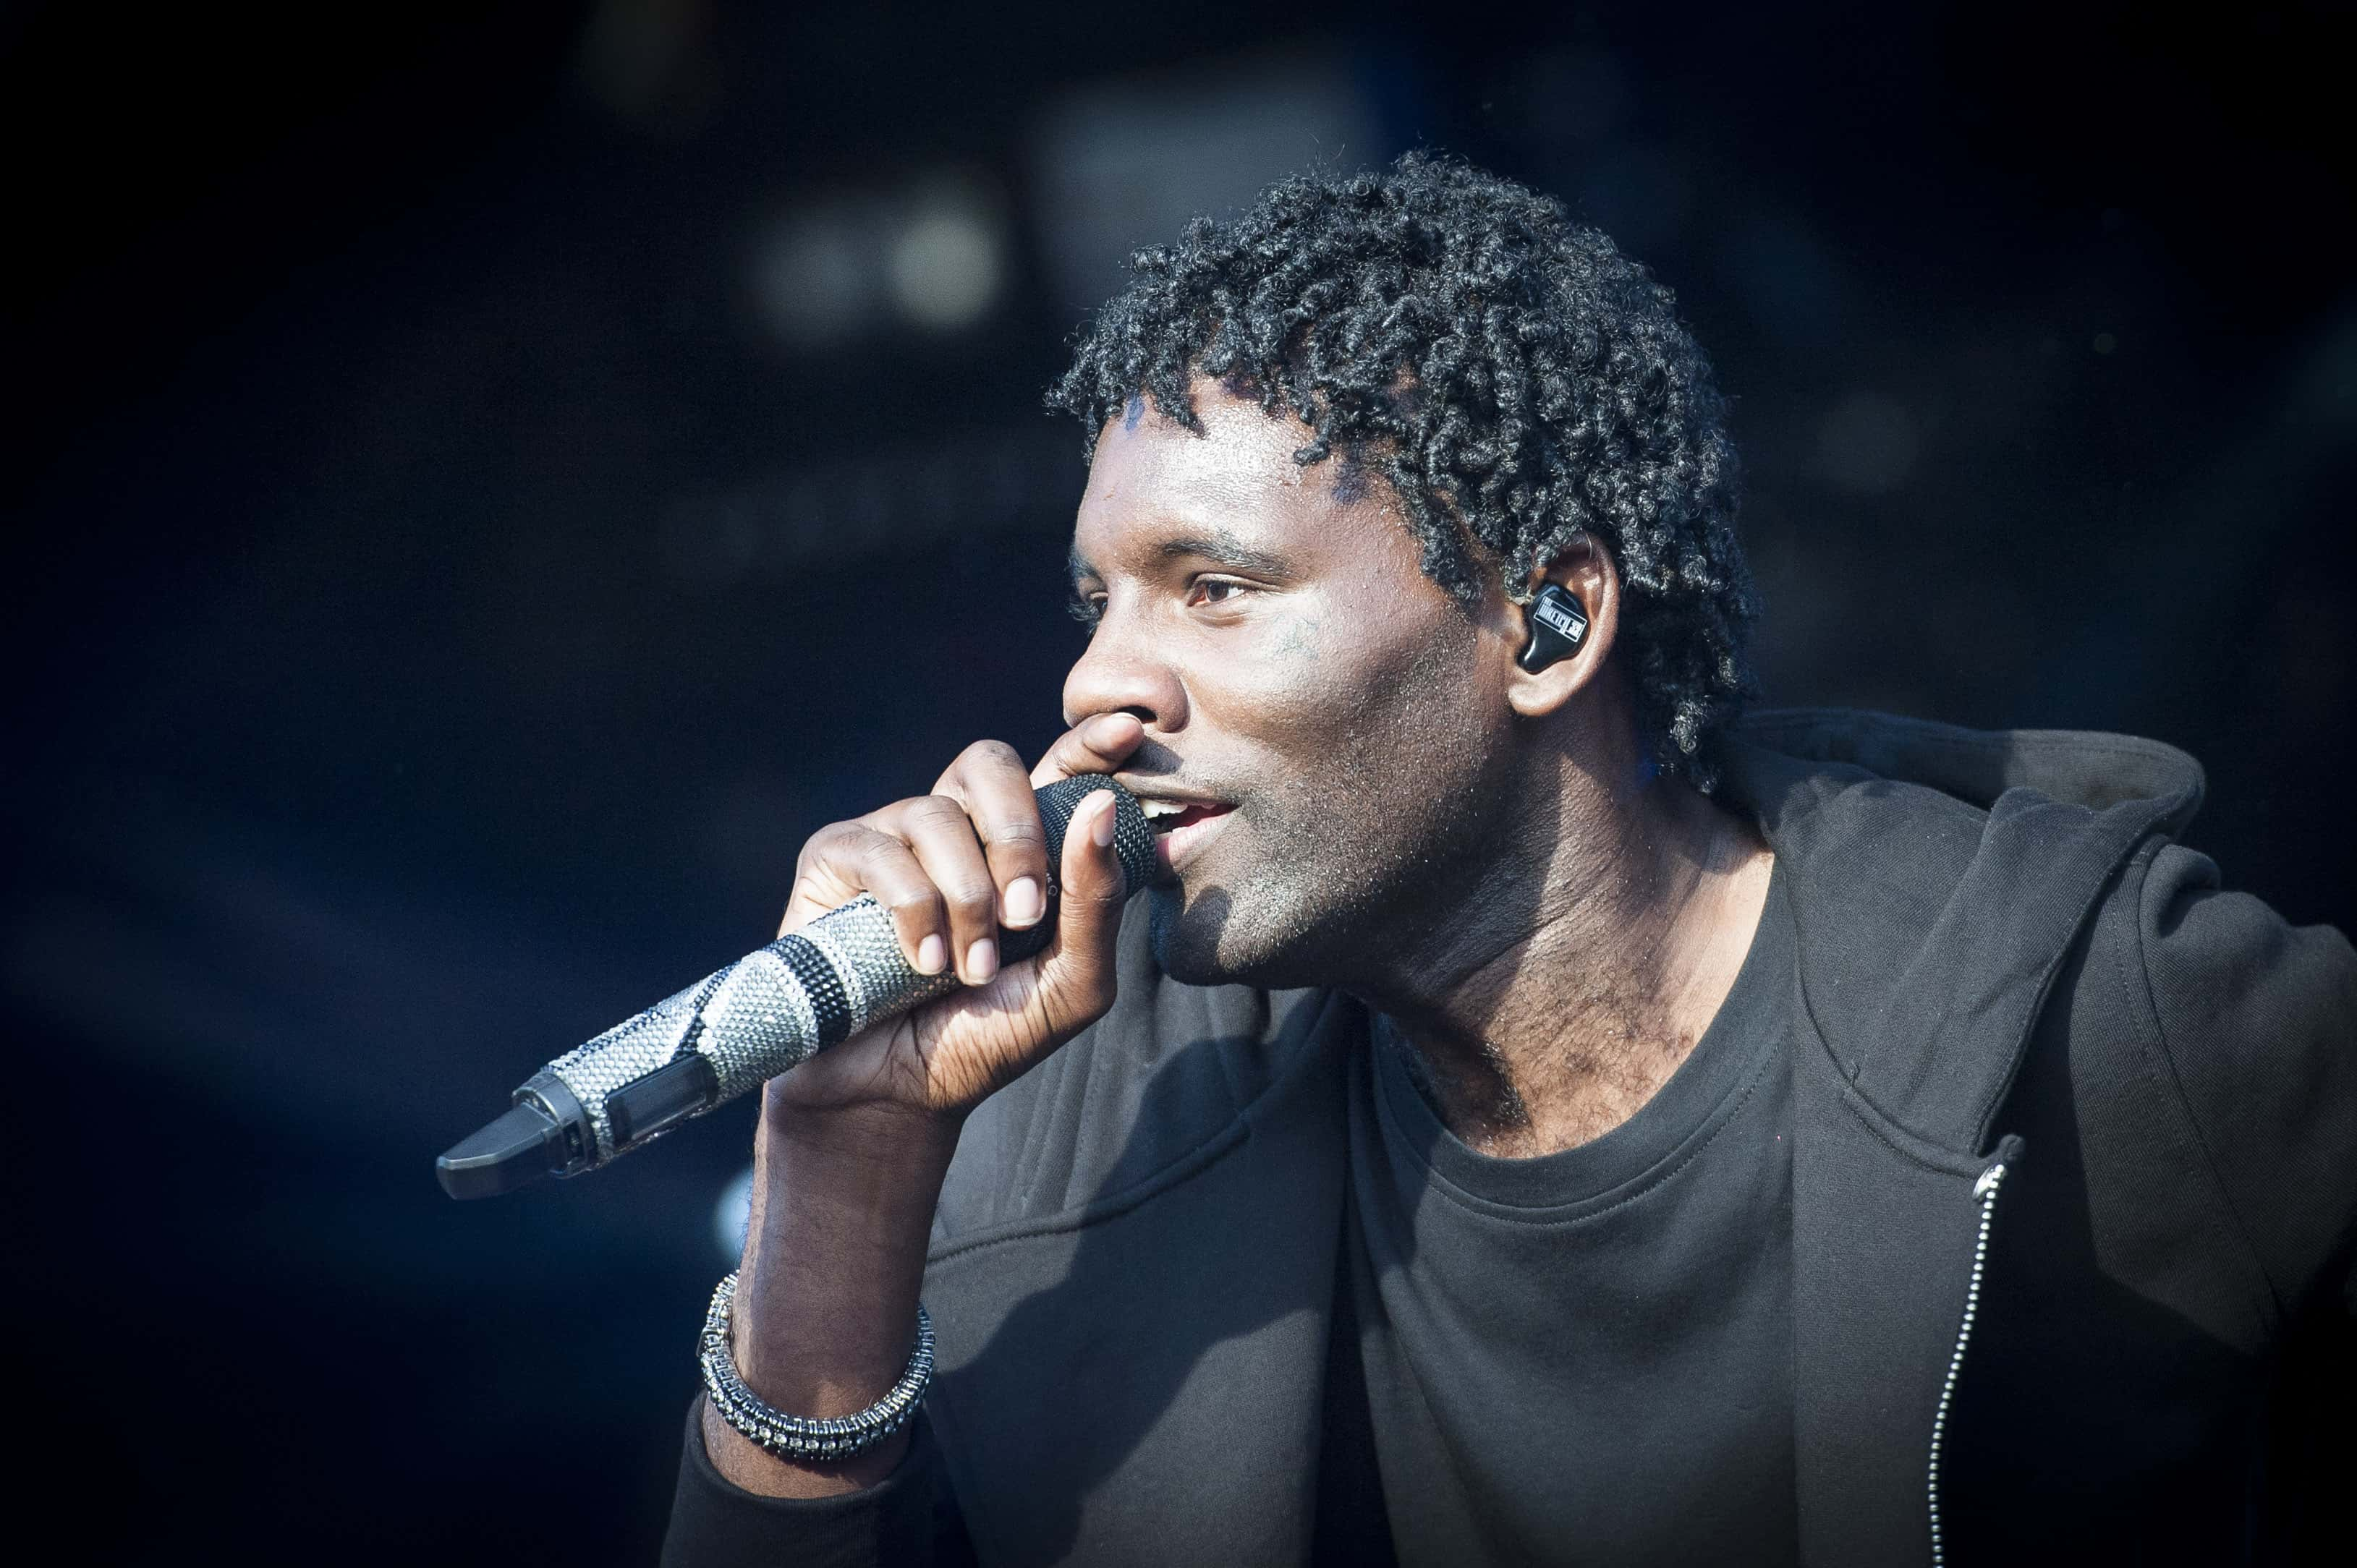 Wretch 32 performs live on stage on day 1 of Camp Bestival 2015, Lulworth Castle - Dorset.